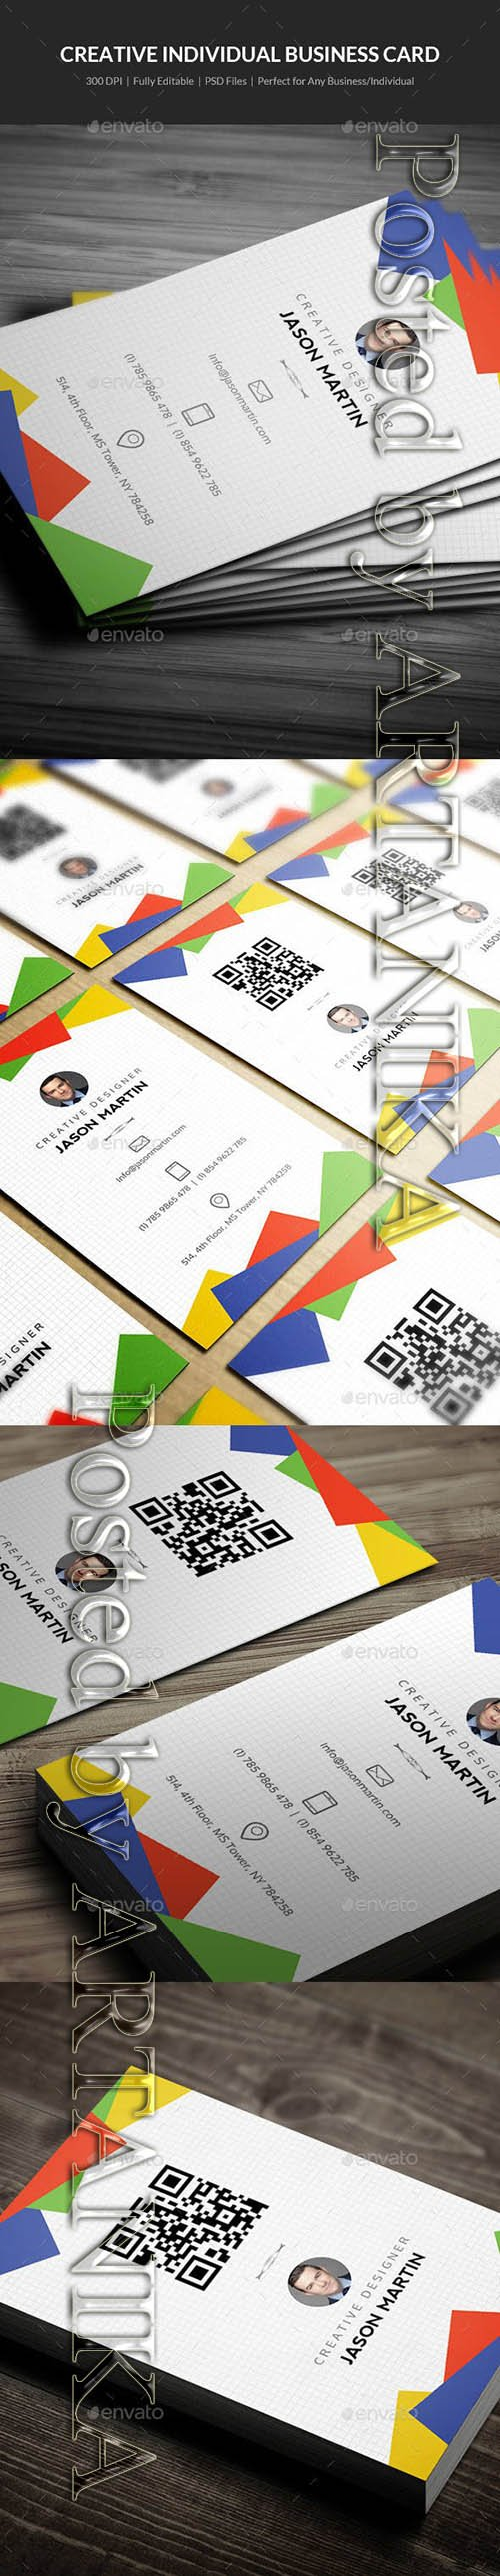 GraphicRiver - Creative Individual Business Card - 09 21740555